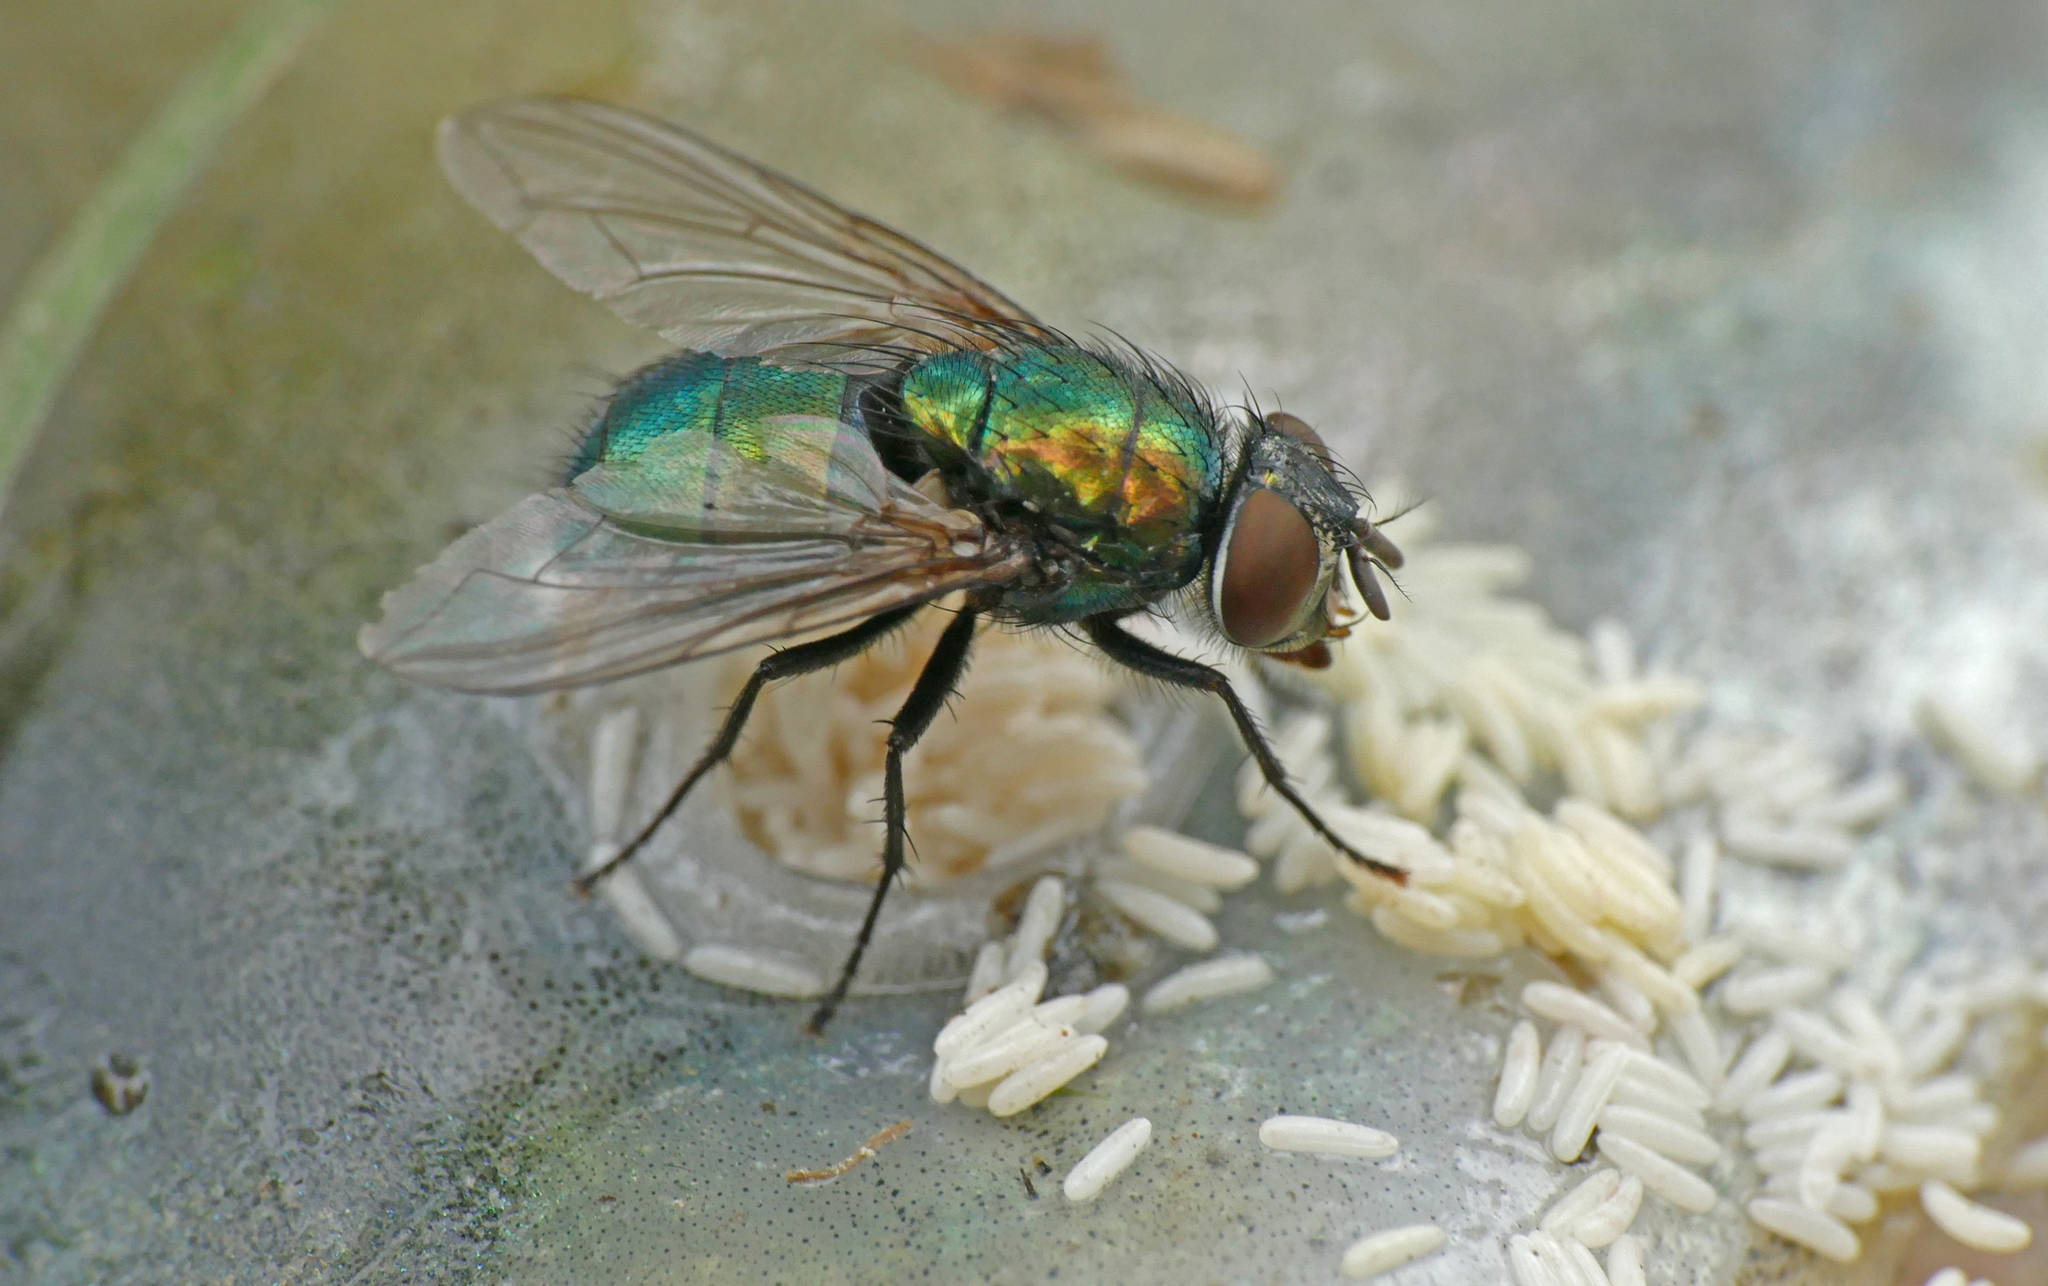 Courtesy Photo   Bob Armstrong                                 This iridescent blow fly was once a more plainly colored maggot. Arthropods, such as insects and crustaceans, and their distant relatives called nematodes (round worms) are two groups that live complex life cycles.